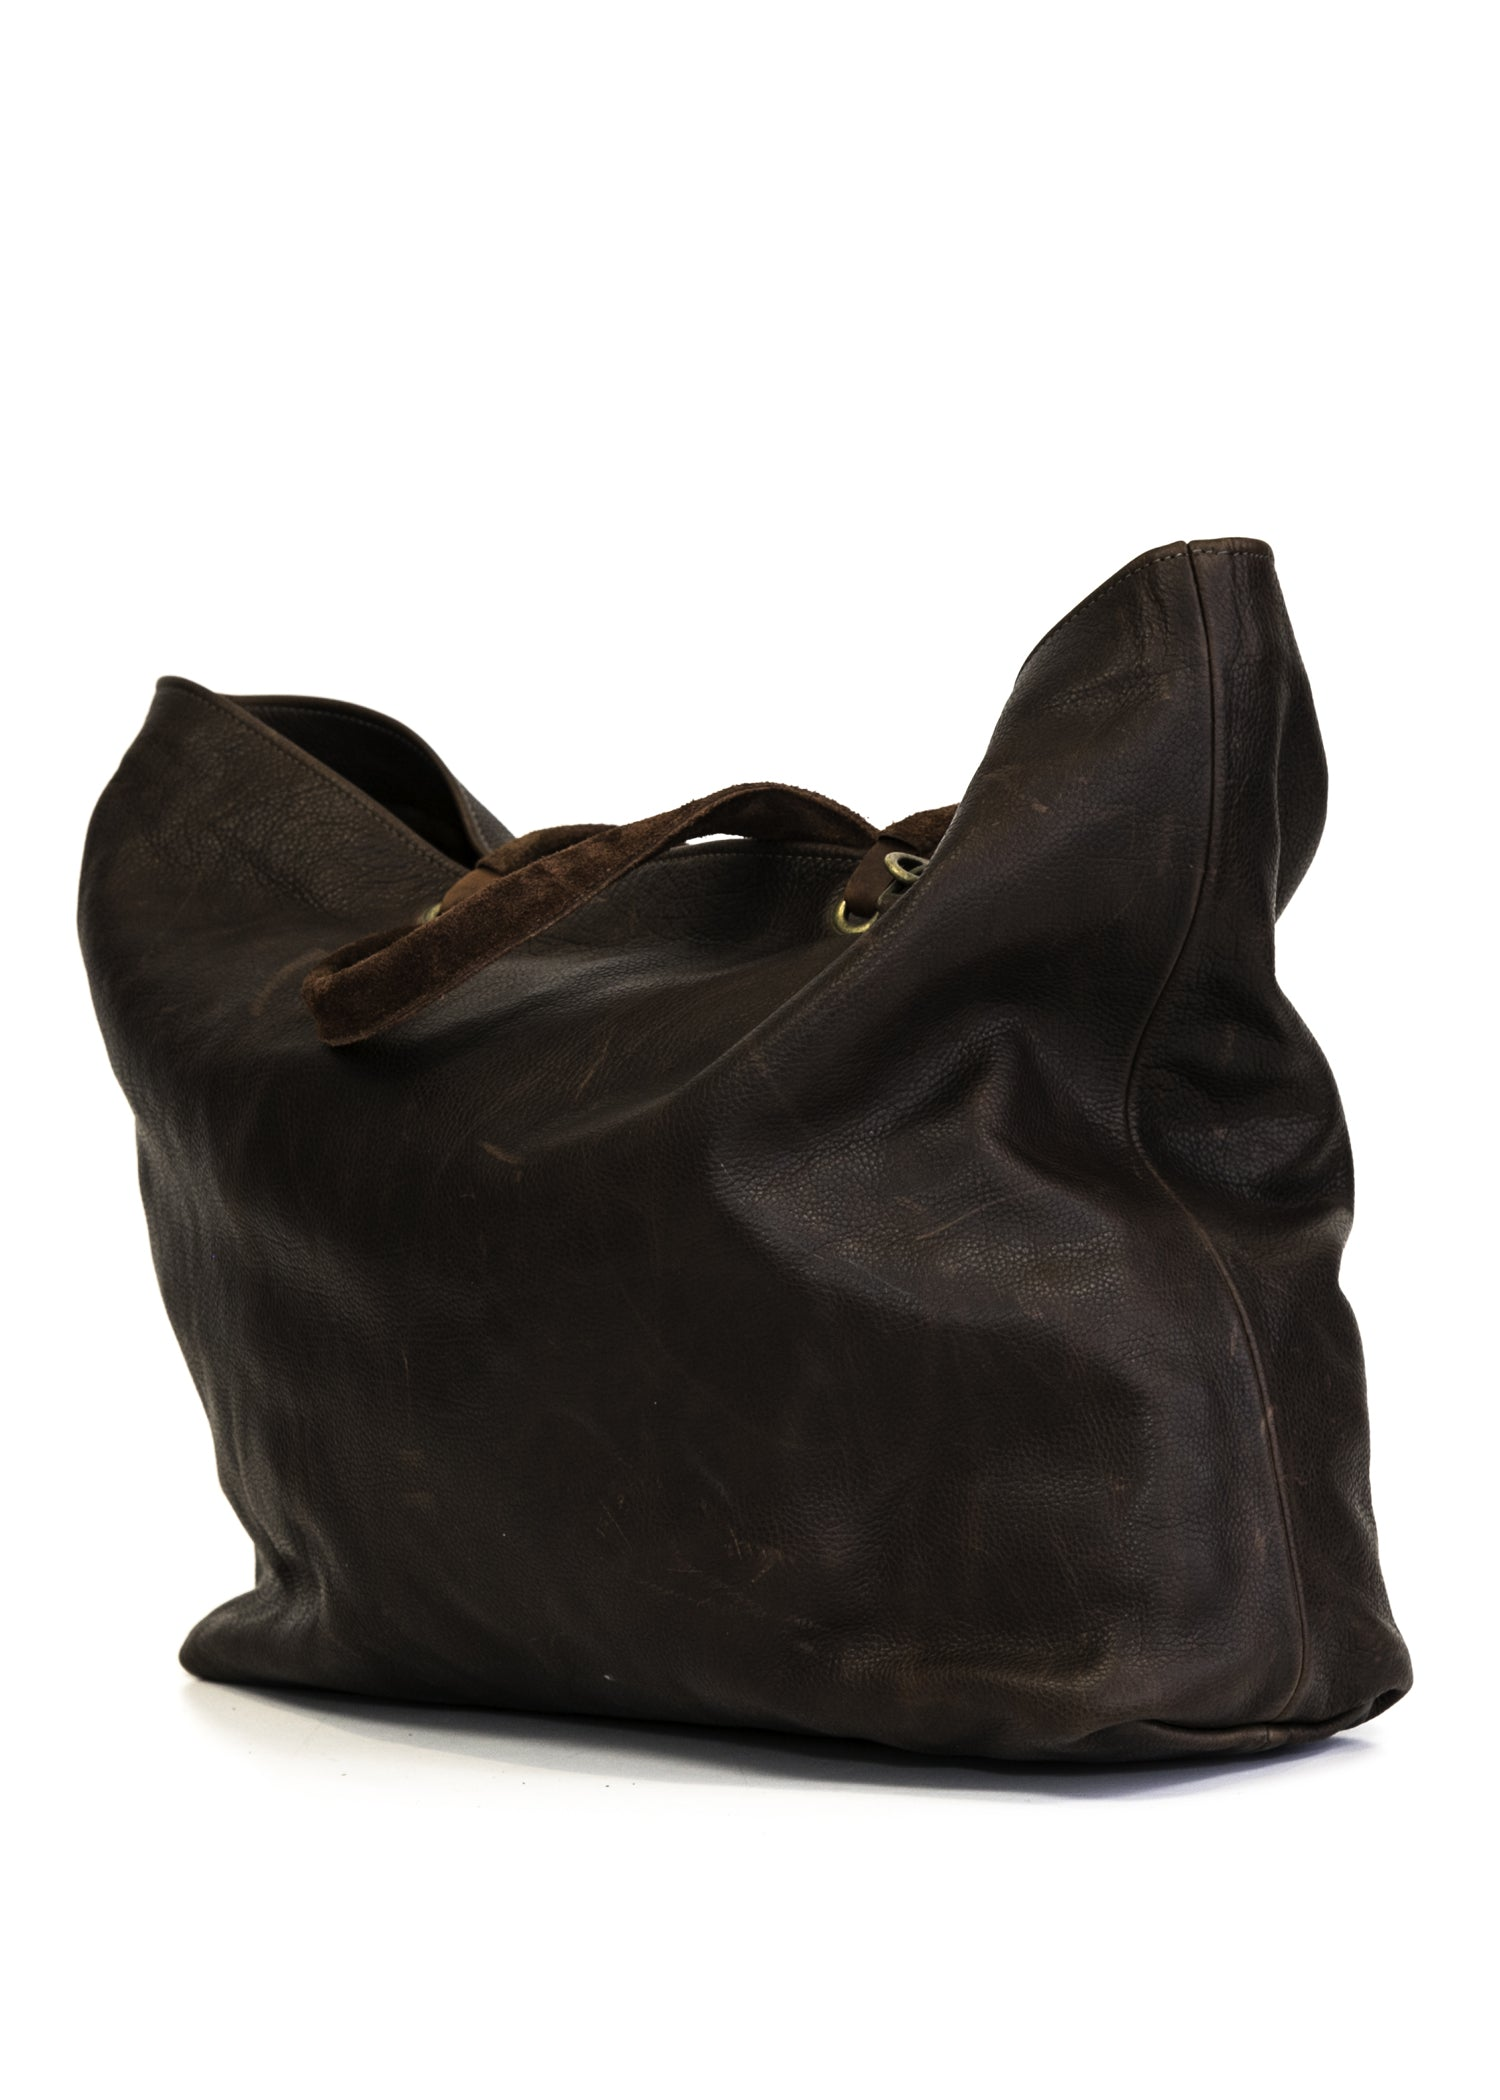 Large Brown Leather Tote